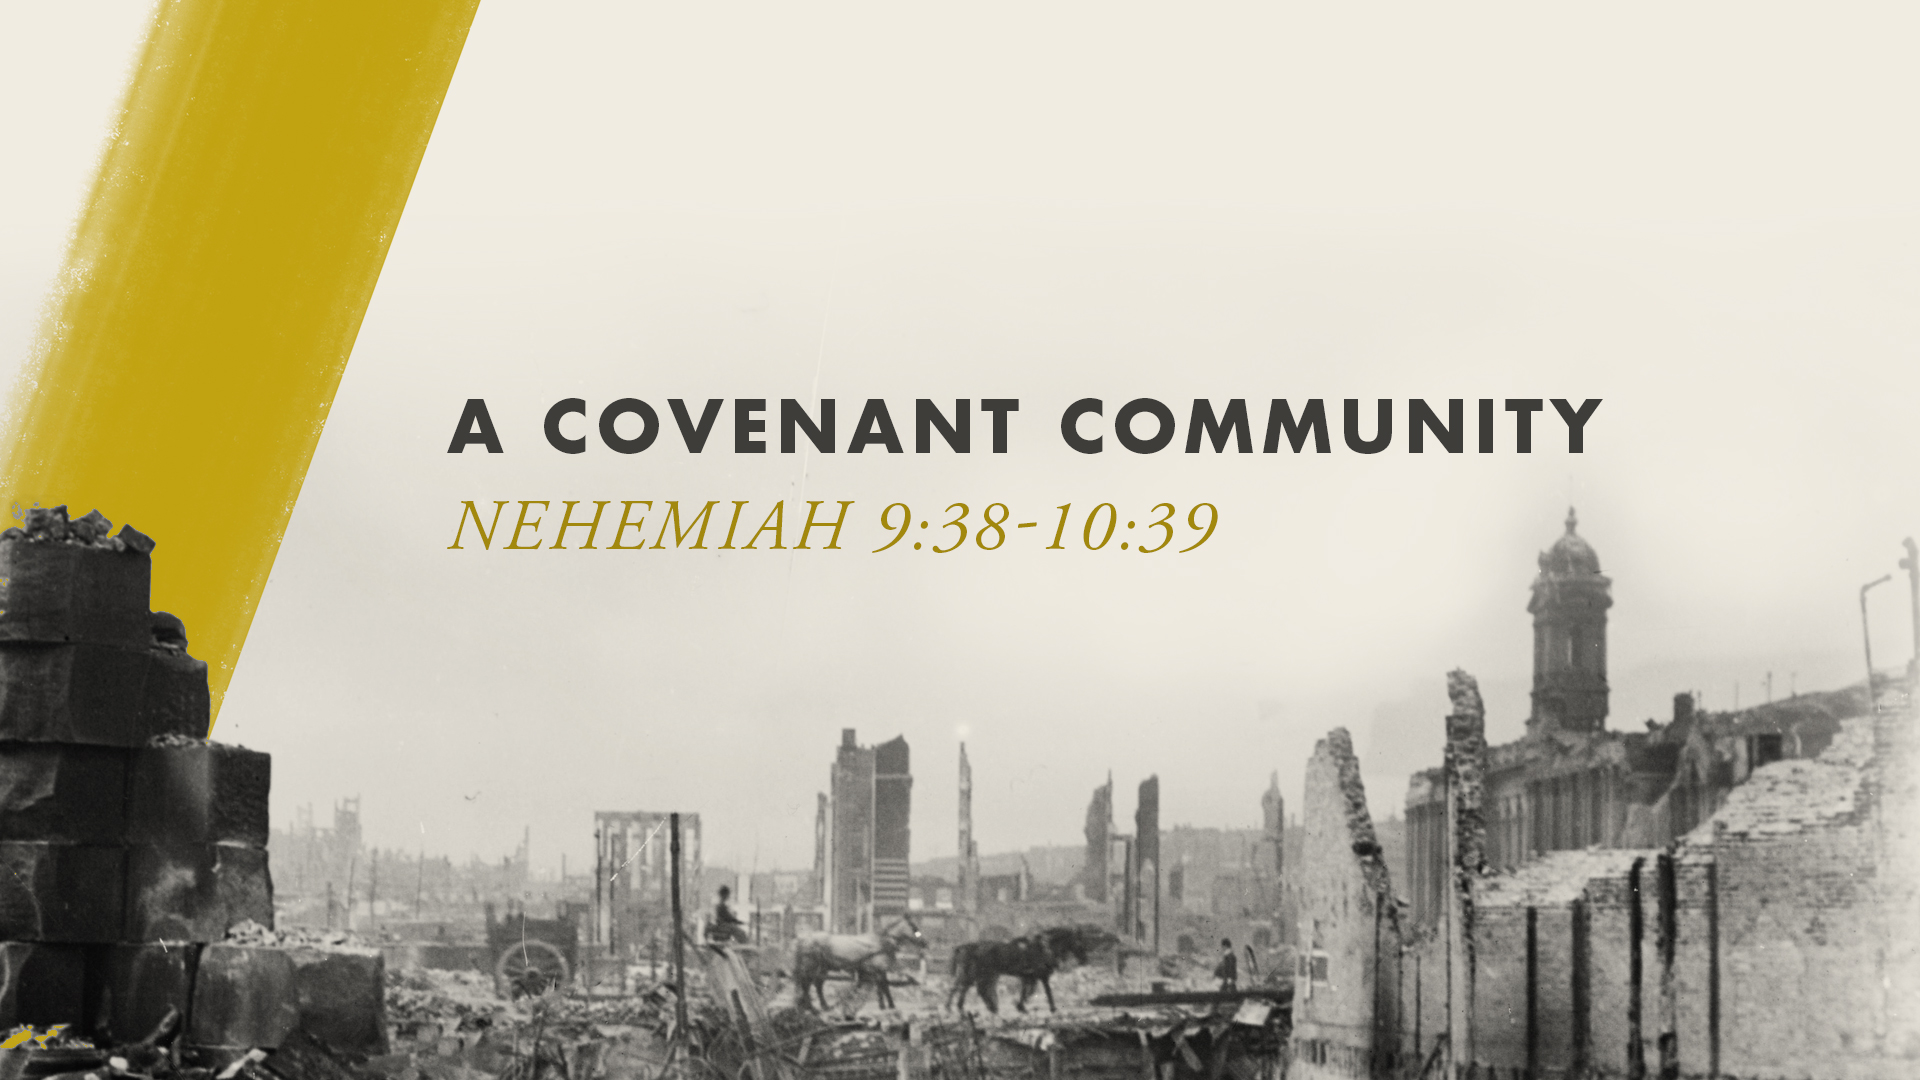 A Covenant Community